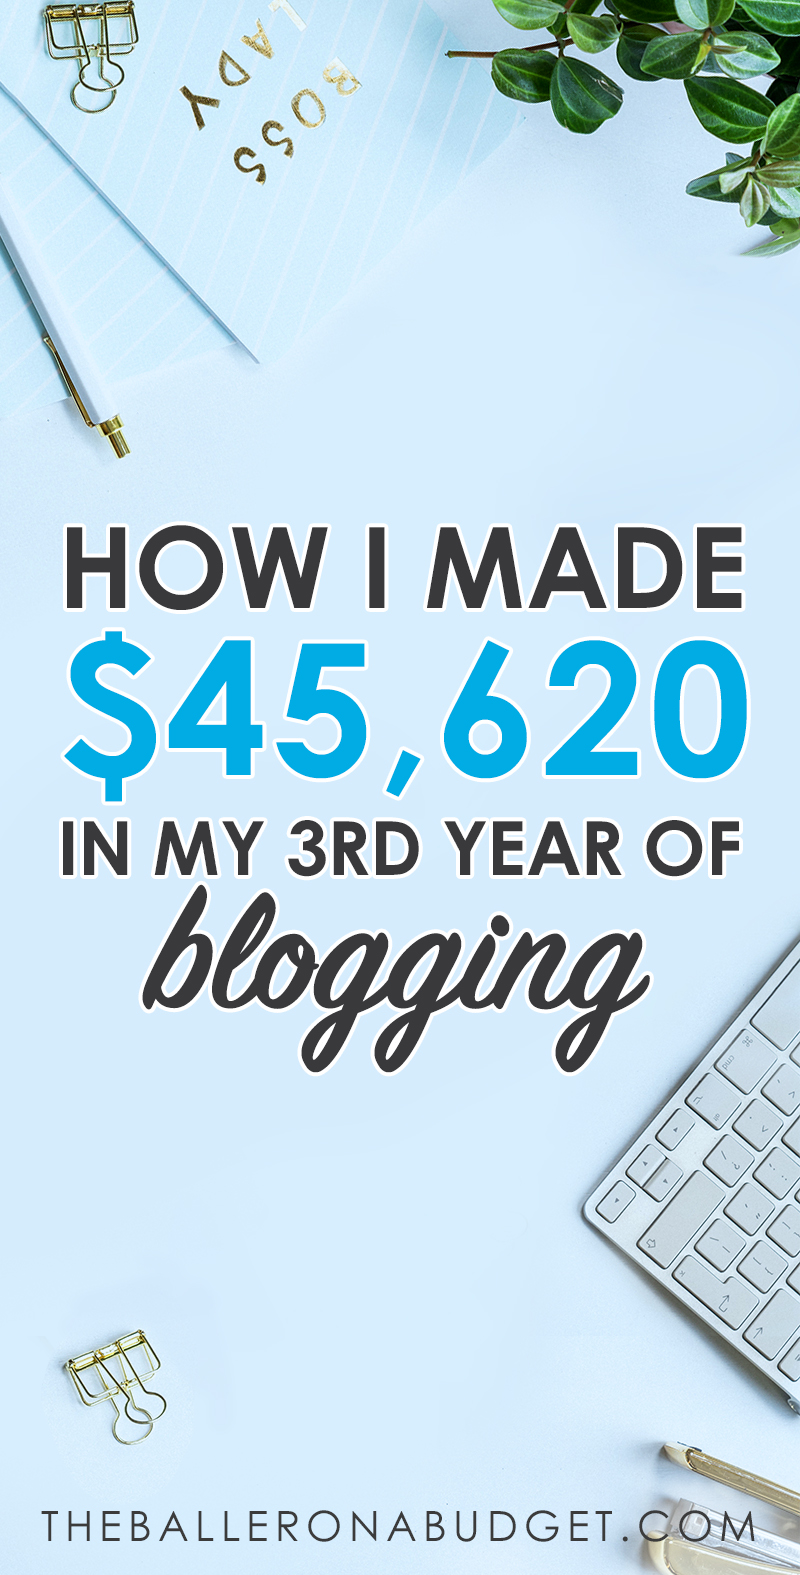 I made over $45,000 in my 3rd year blogging. My blogging income report shows all the hurdles I faced, the strategies I used, and how you can build a full-time blogging income too. - www.theballeronabudget.com